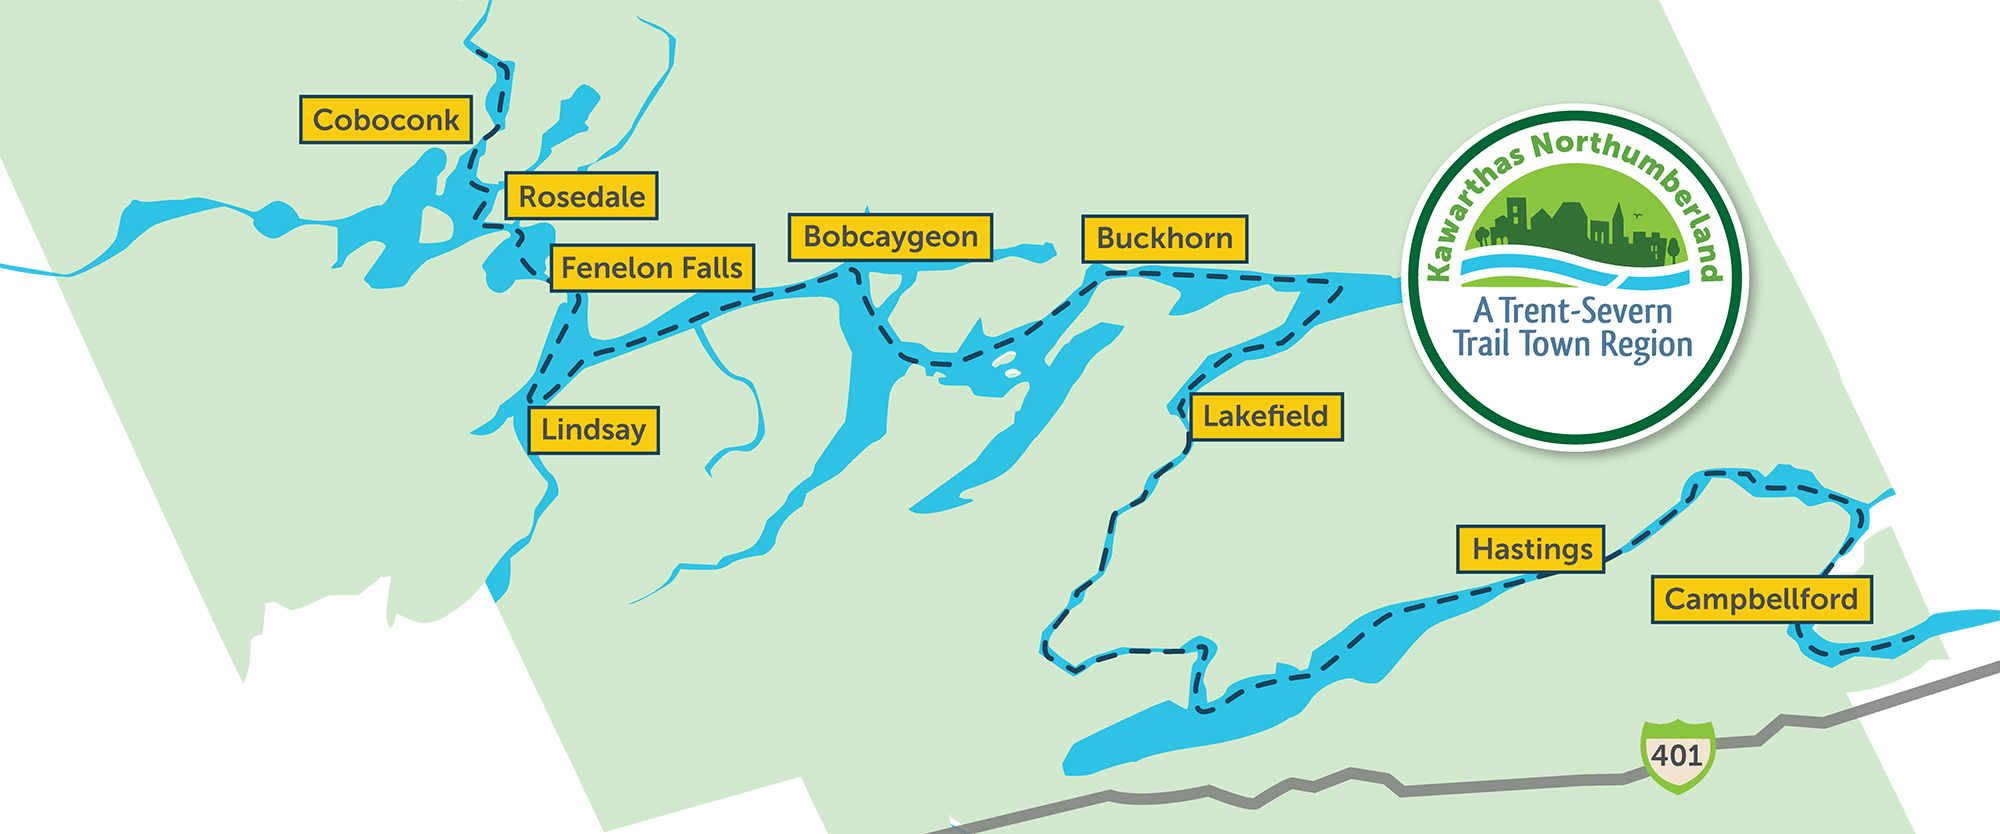 Map of Trent Severn Waterway Trail Towns